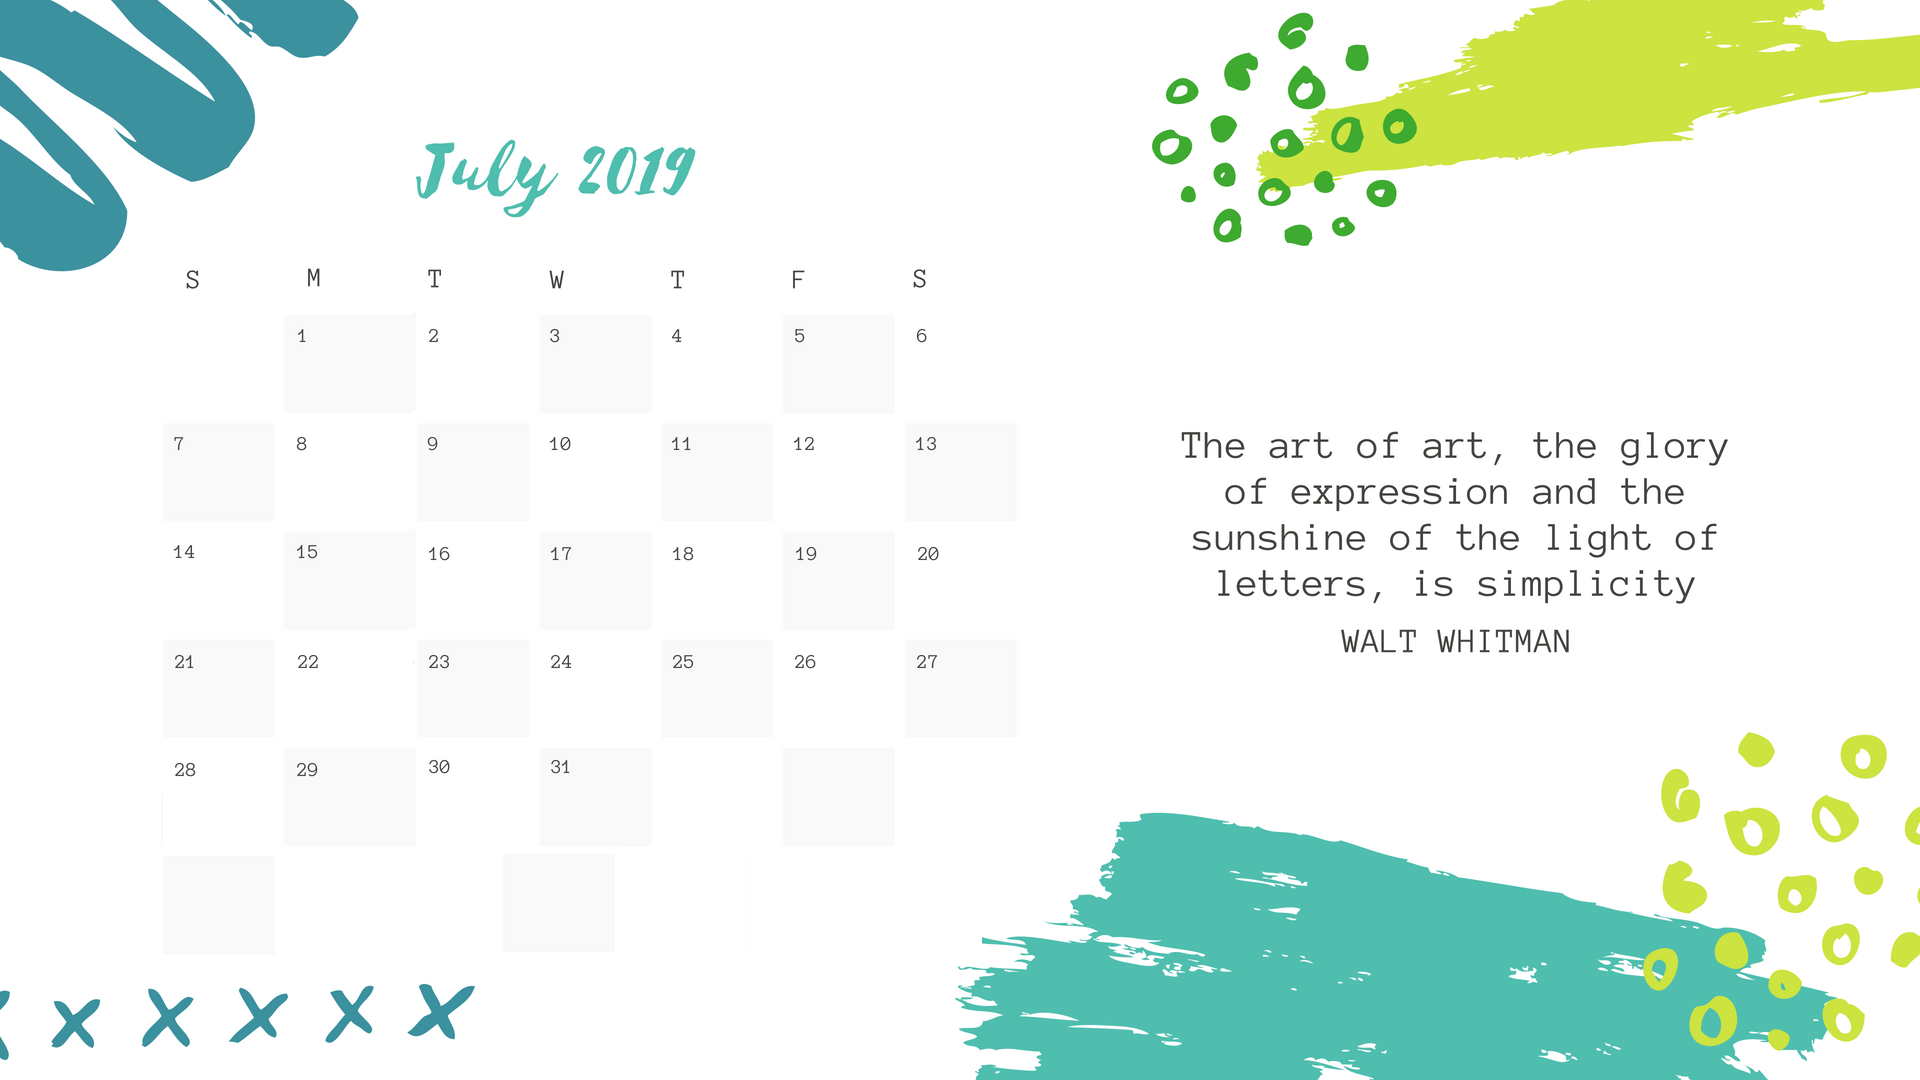 Inspirational July 2019 Calendar Wallpaper